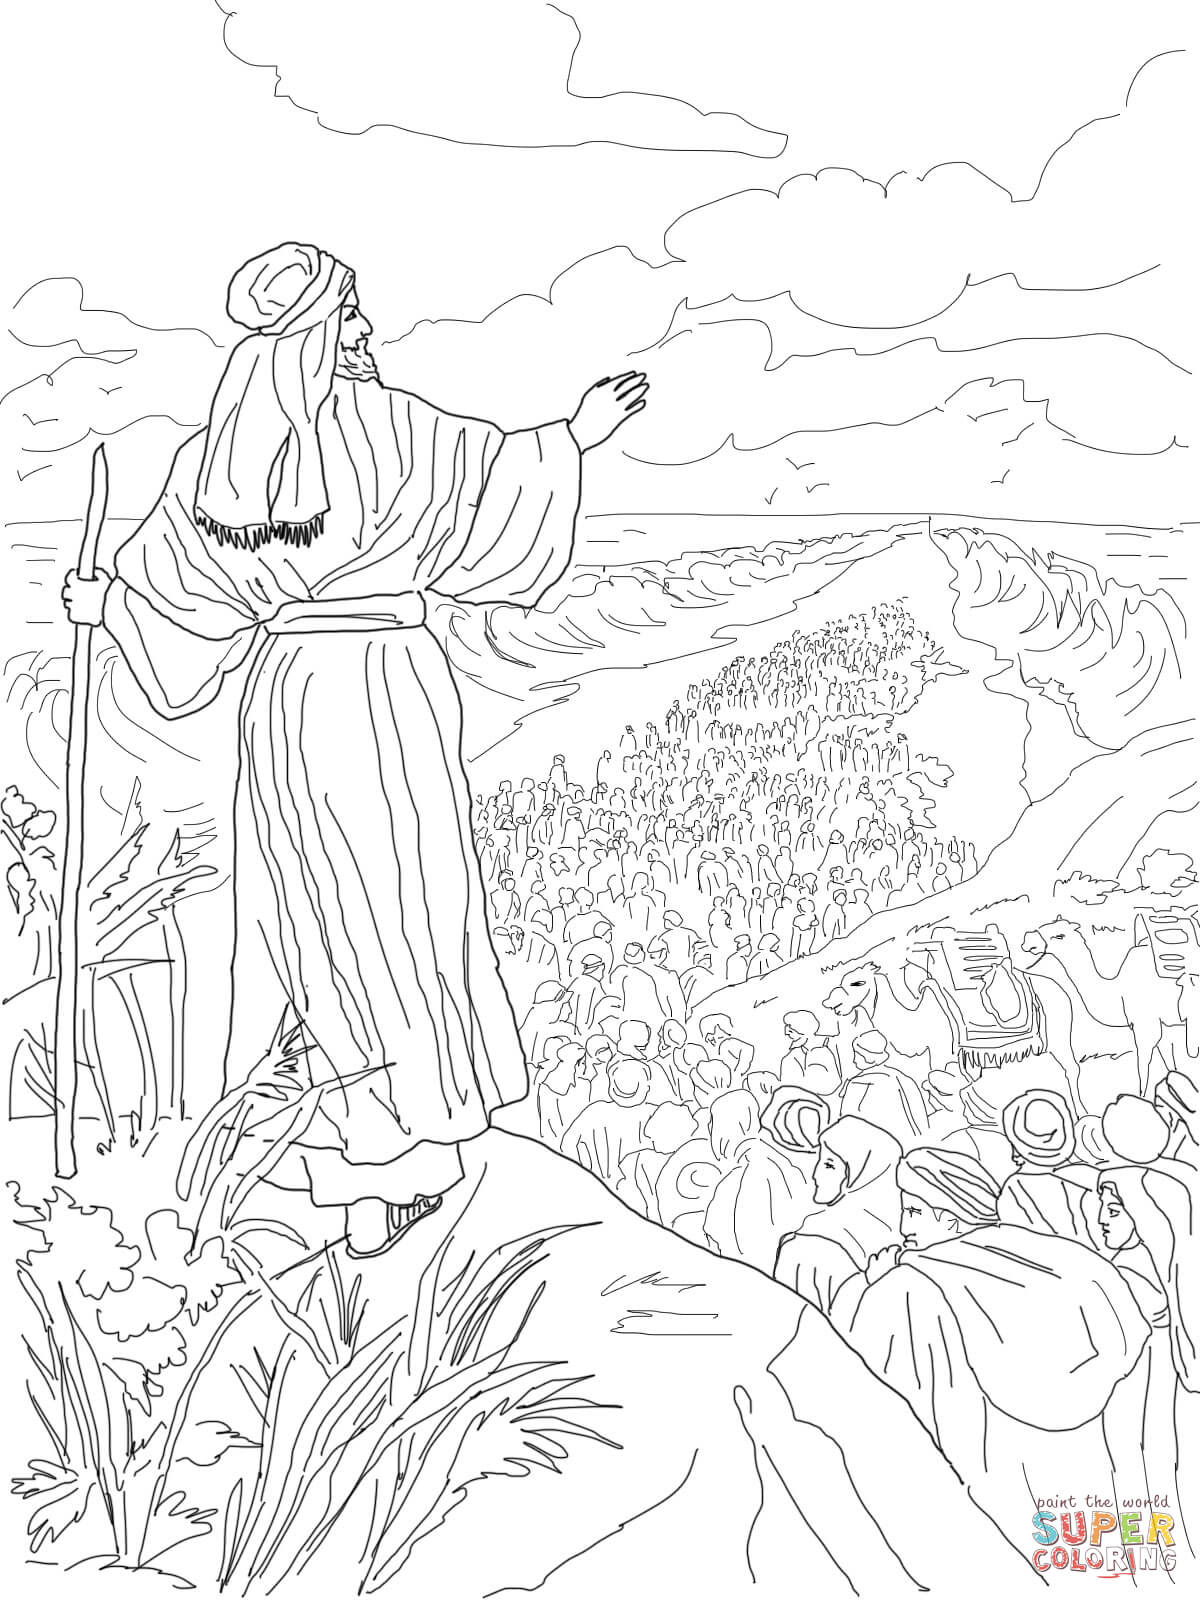 israelites crossing the red sea coloring page coloring home